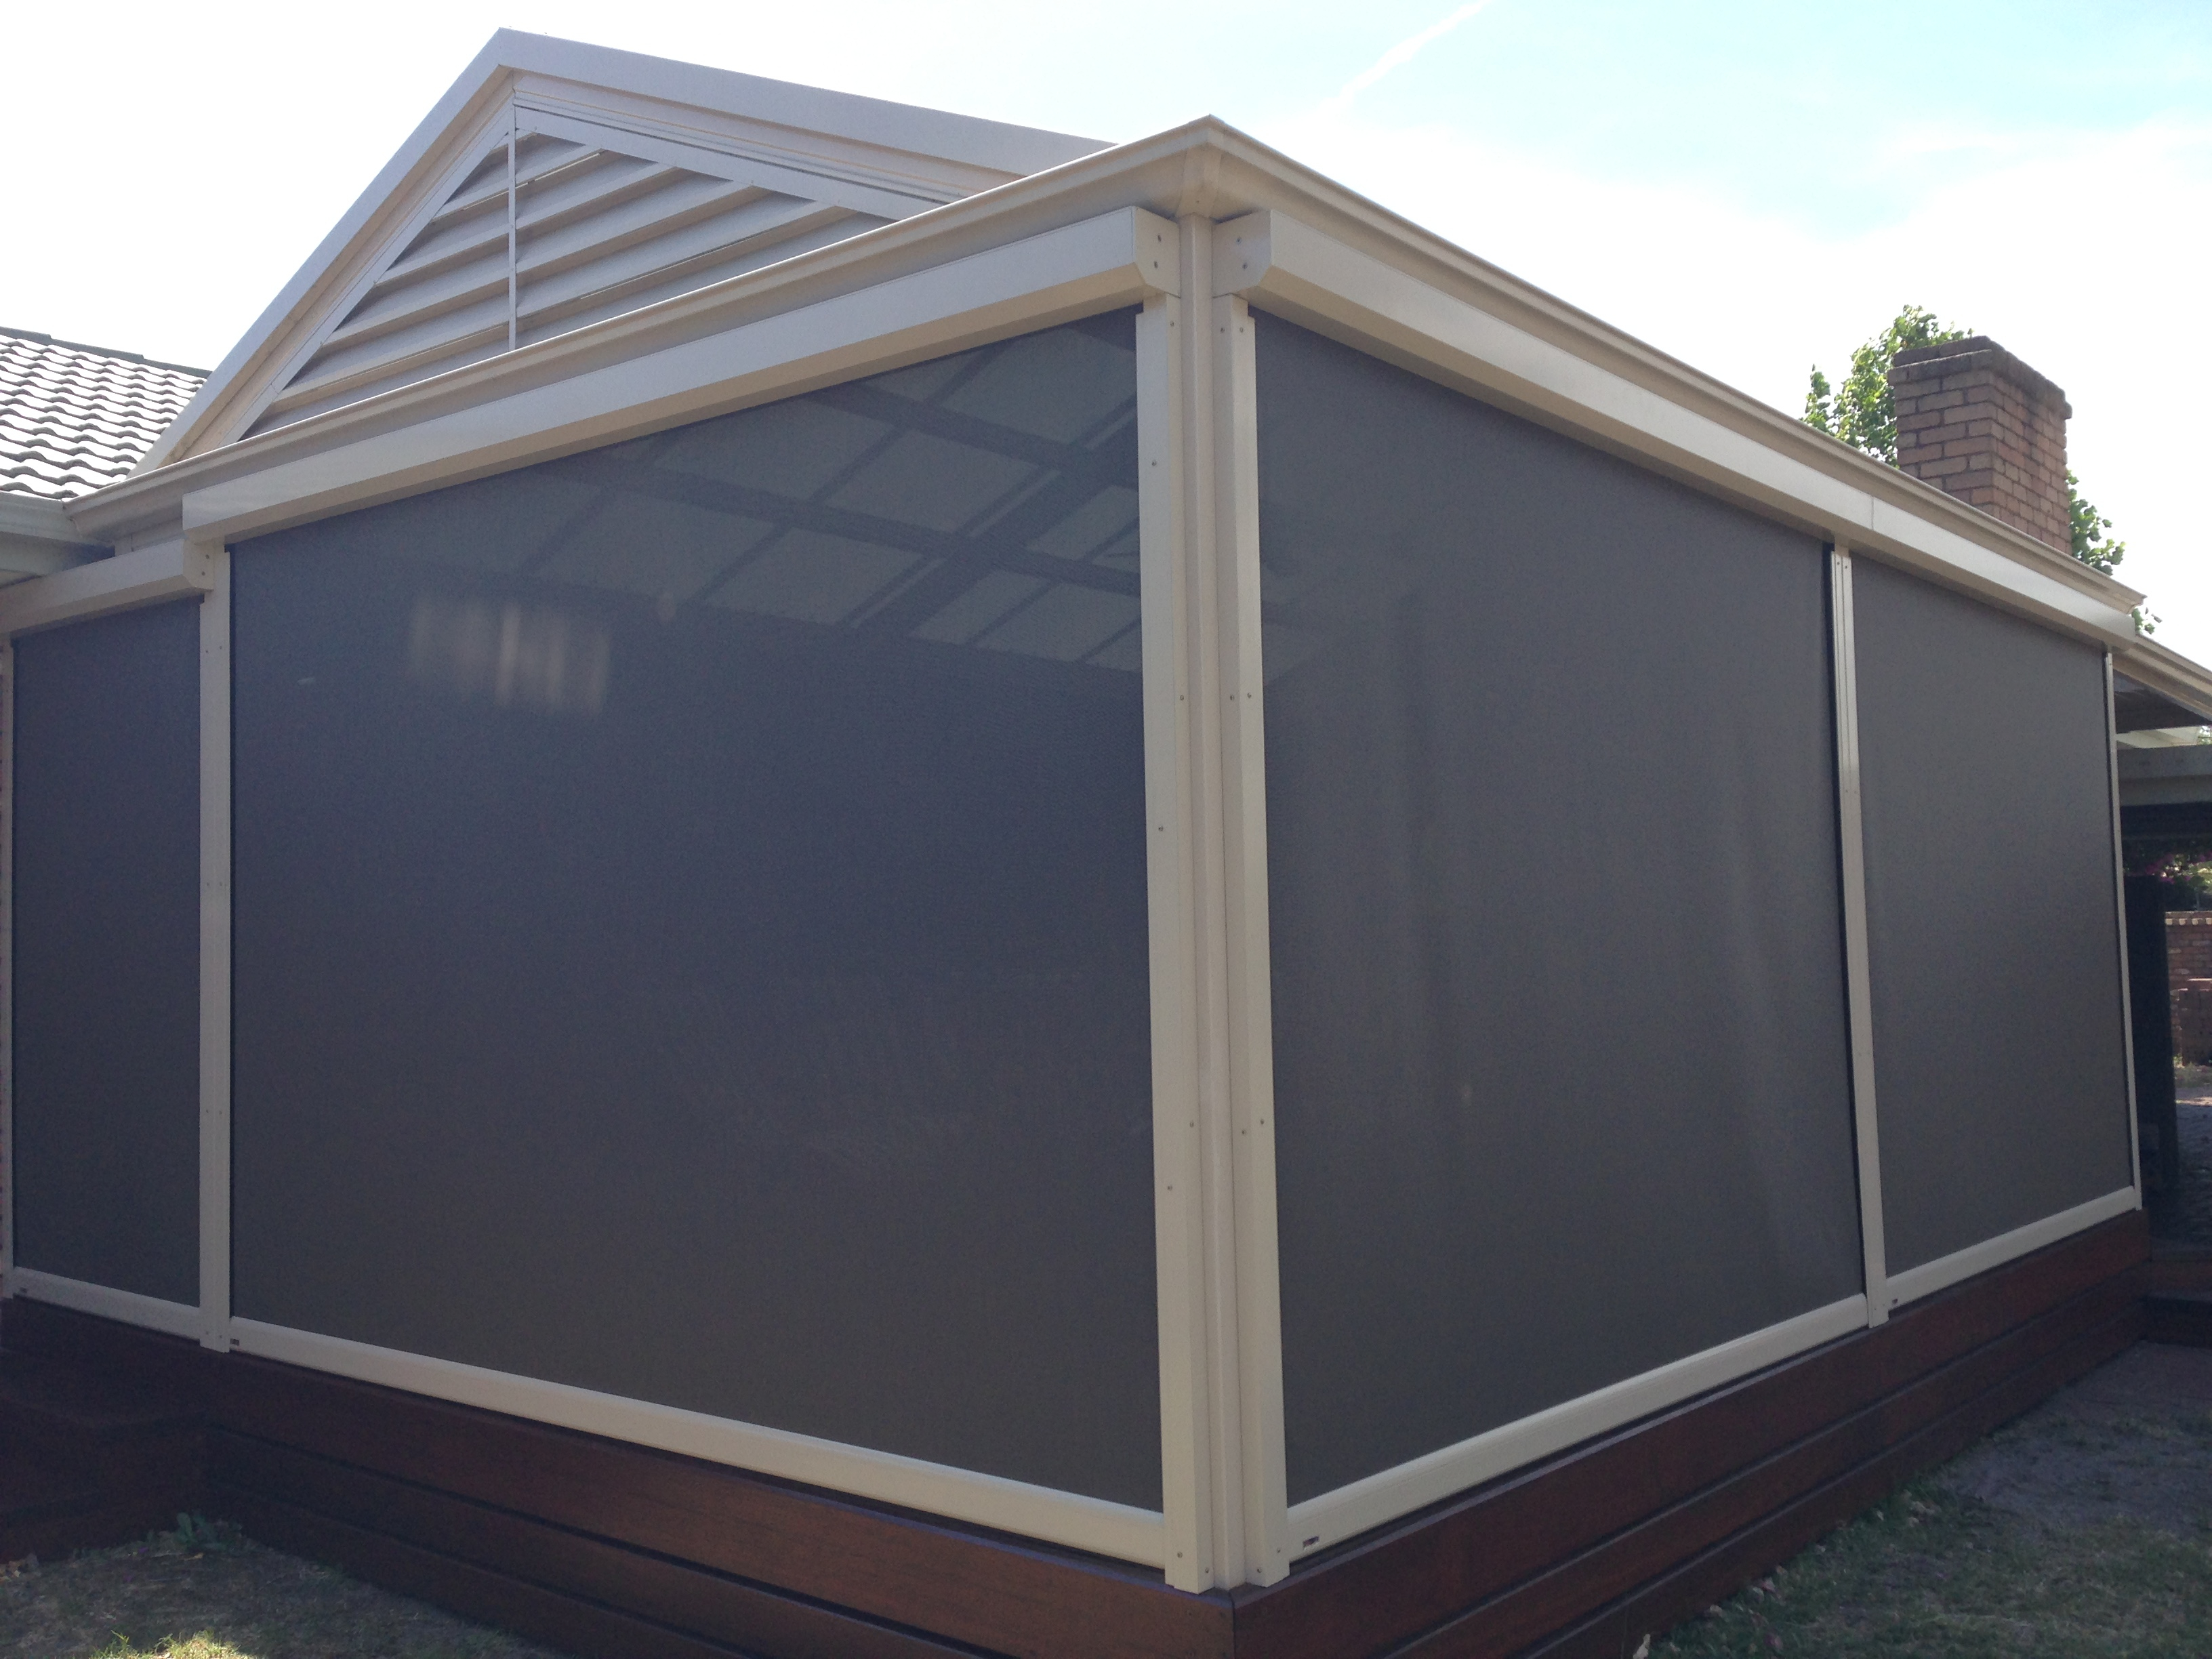 Sun Blinds Outdoor Blinds Melbourne Shade Systems for size 3264 X 2448